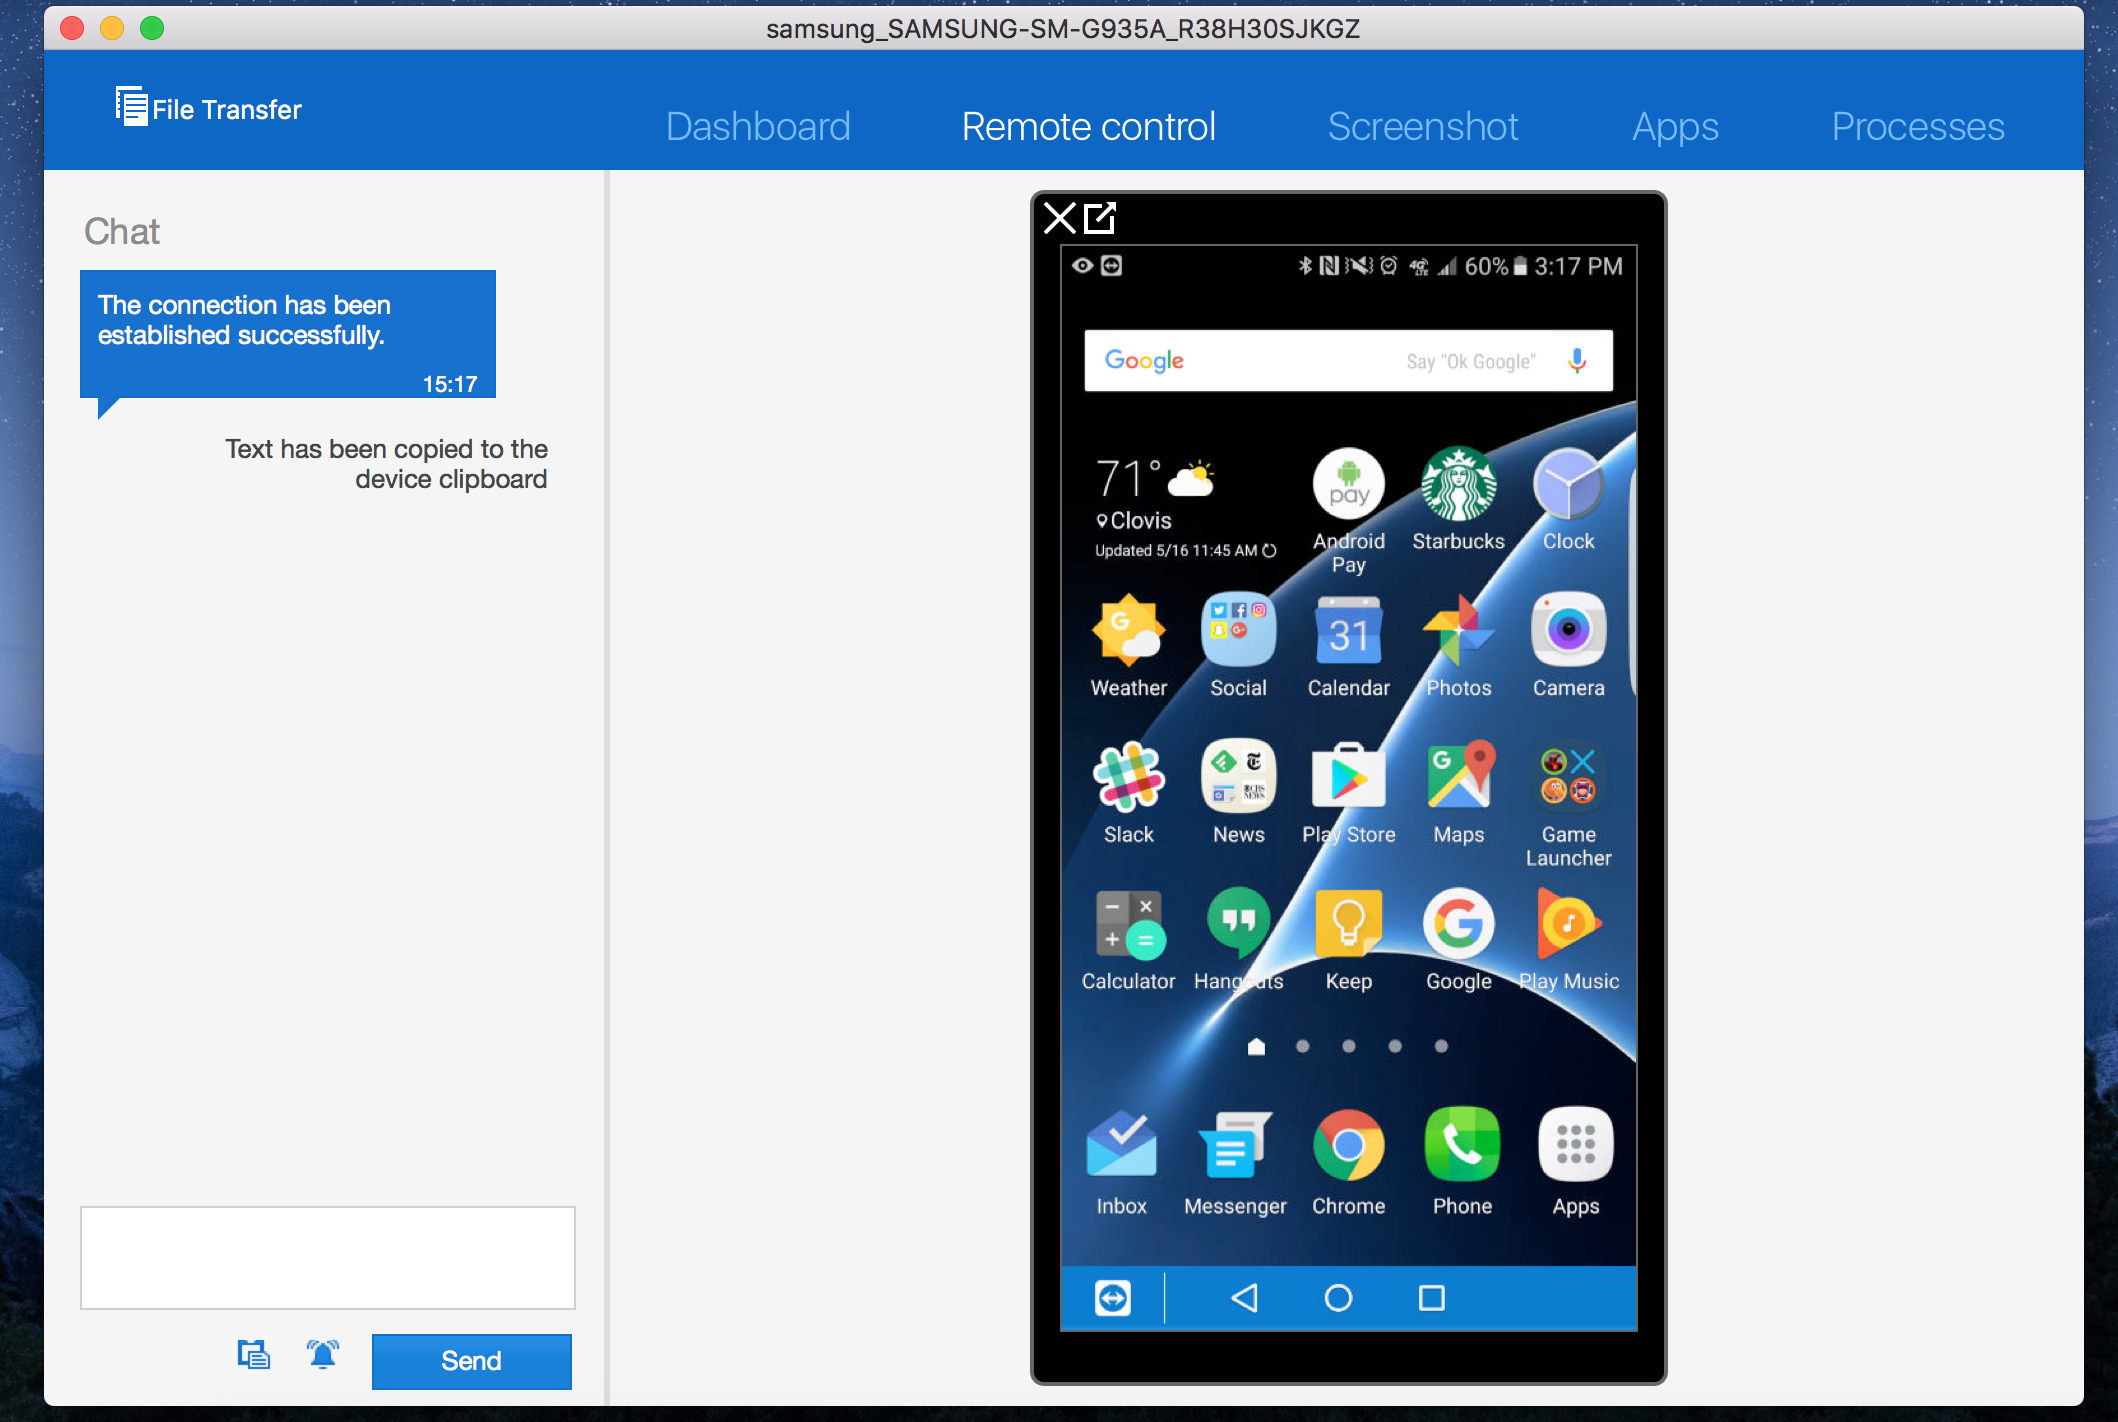 Five ways Google can make the Chrome browser and Android work closer